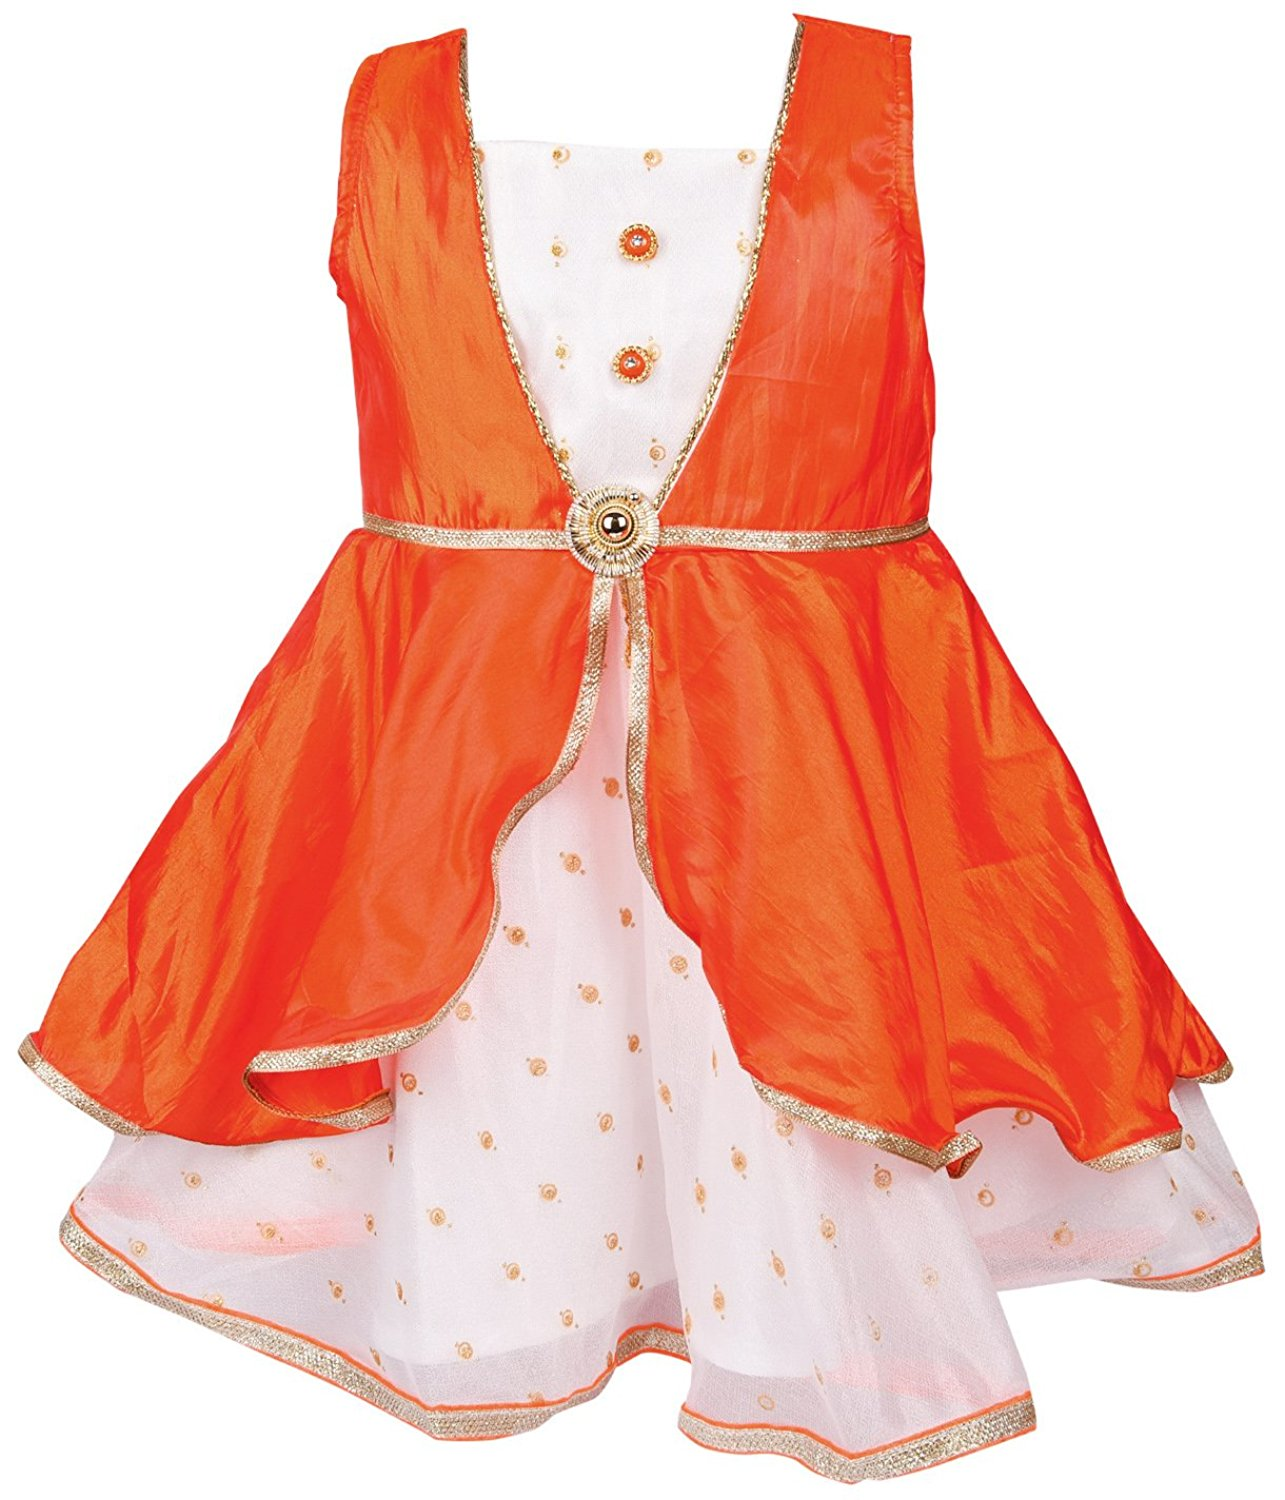 5ba25ecca3f Baby Girls Party Wear Frock Dress fe2210org - Wish Karo Dresses ...